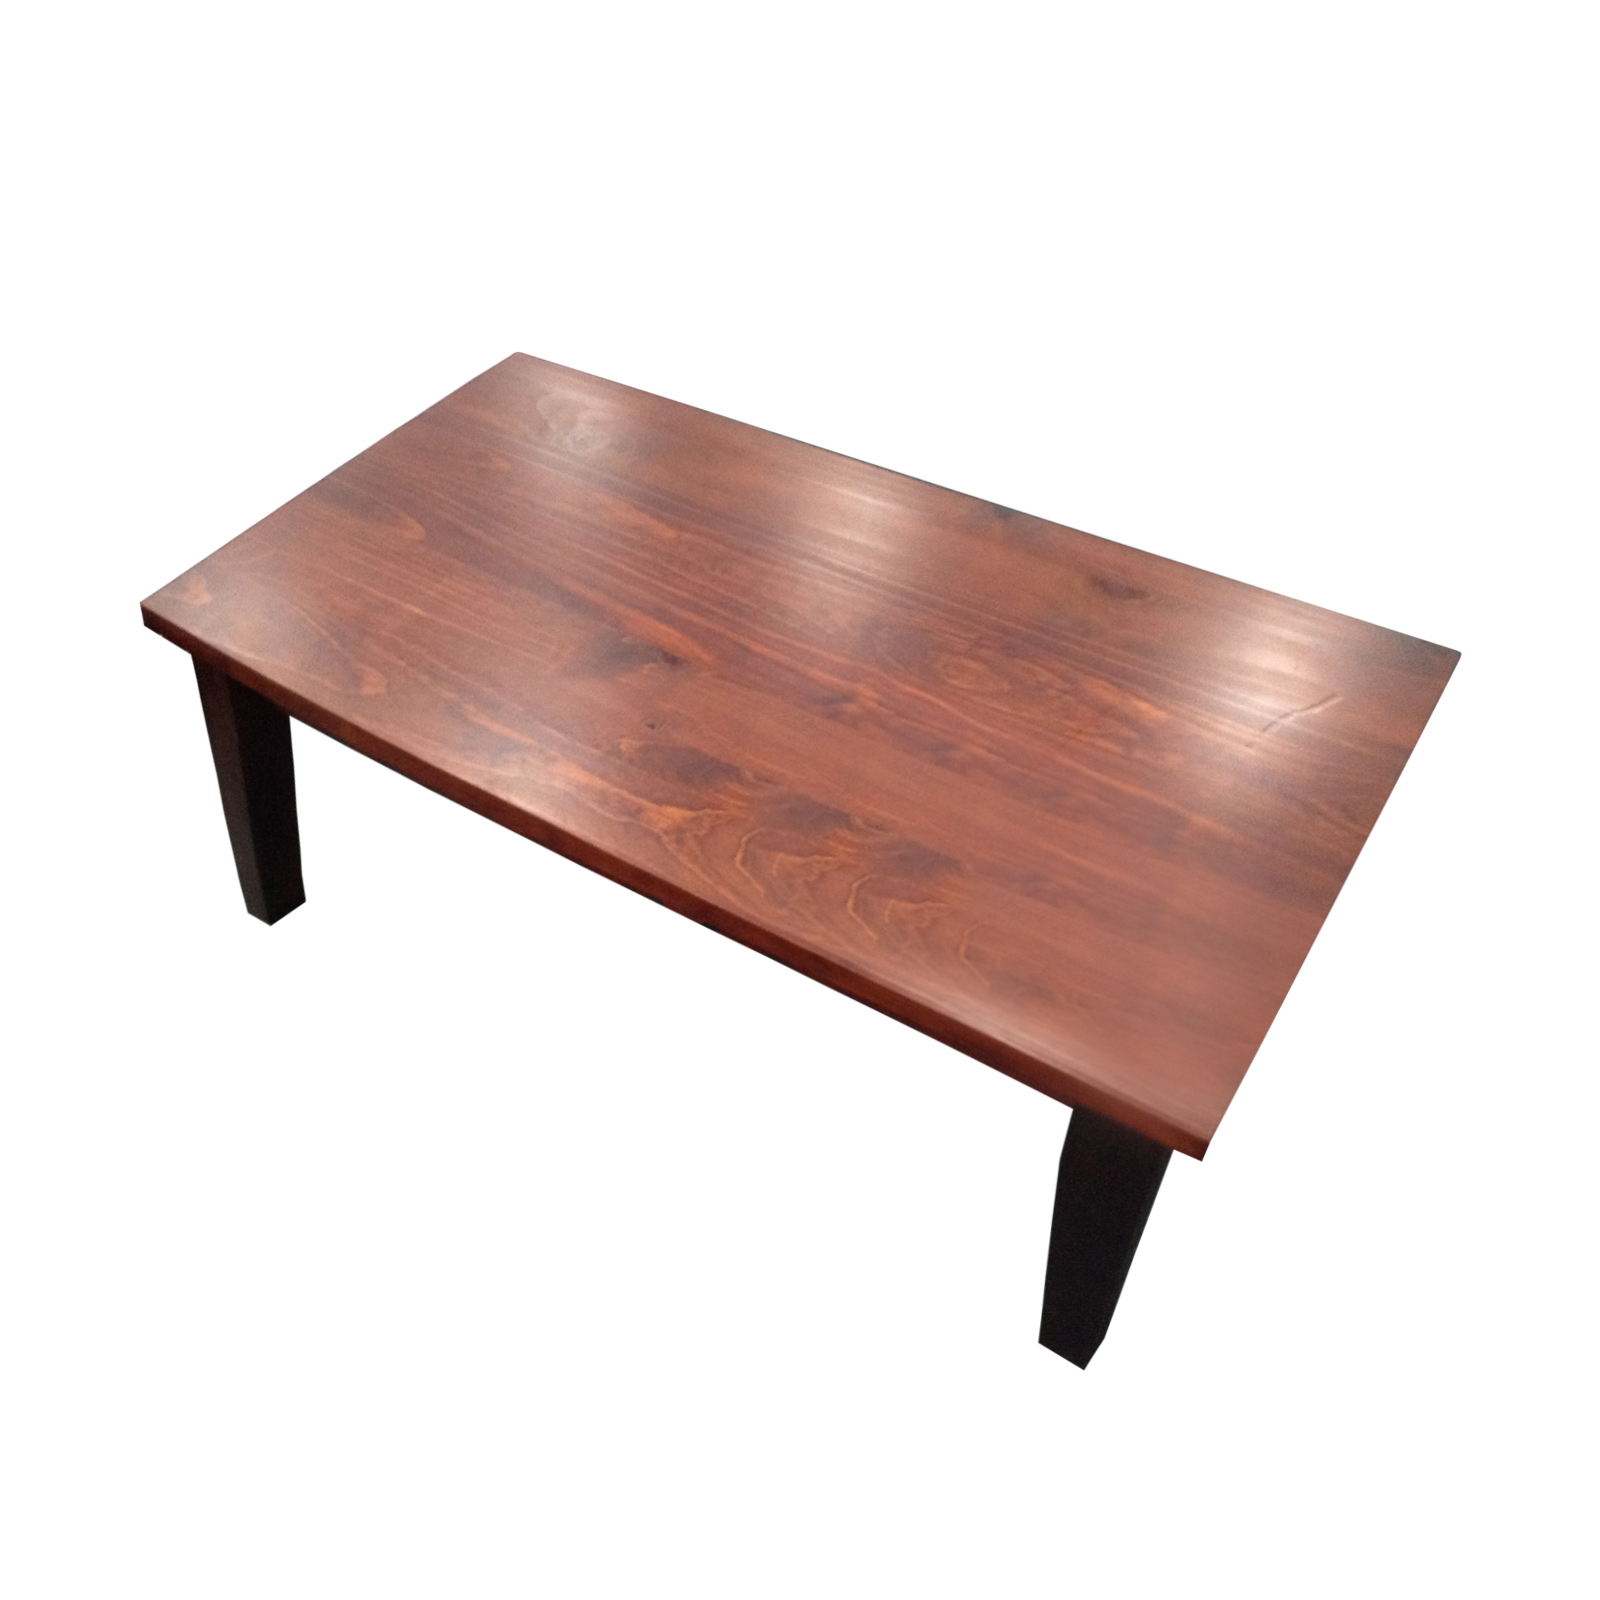 Modern coffee table pine frame brown wooden leg vintage for Coffee tables ebay australia